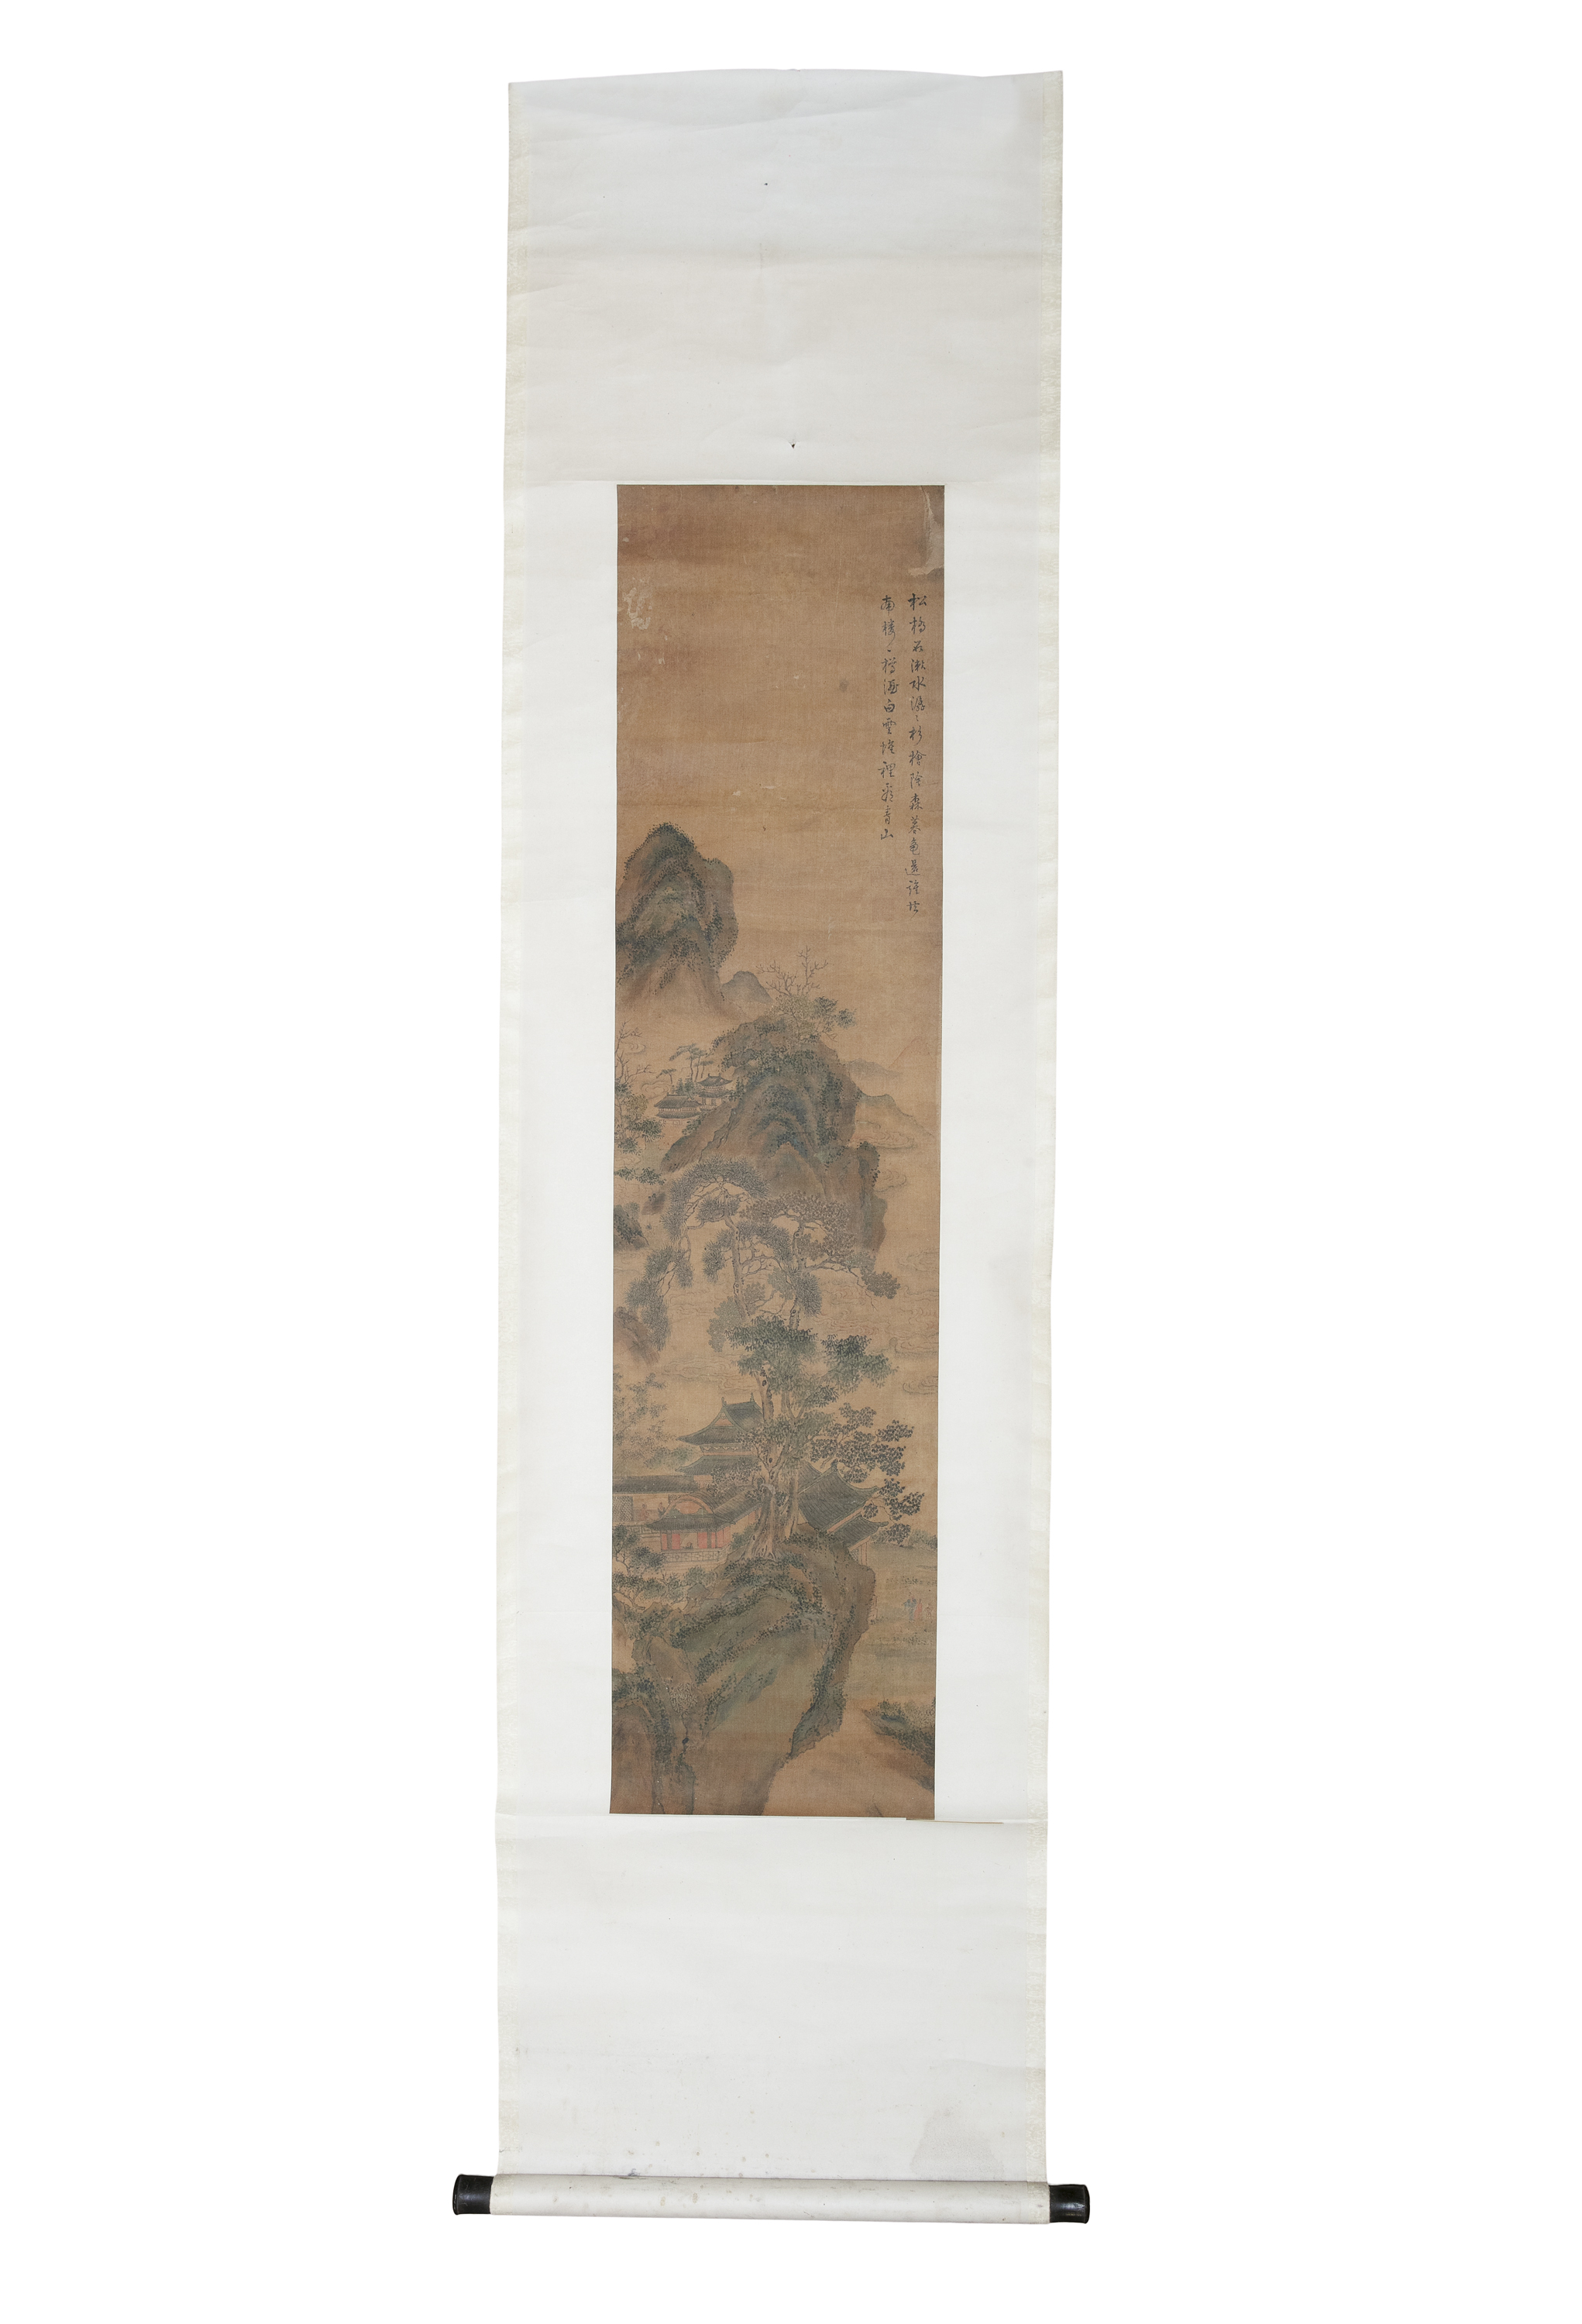 CHINESE SCHOOL, AFTER PURU 溥儒 ALSO KNOWN AS PU XINYU 溥心畬 (1896-1963) Landscape with a pavilion and - Image 3 of 7